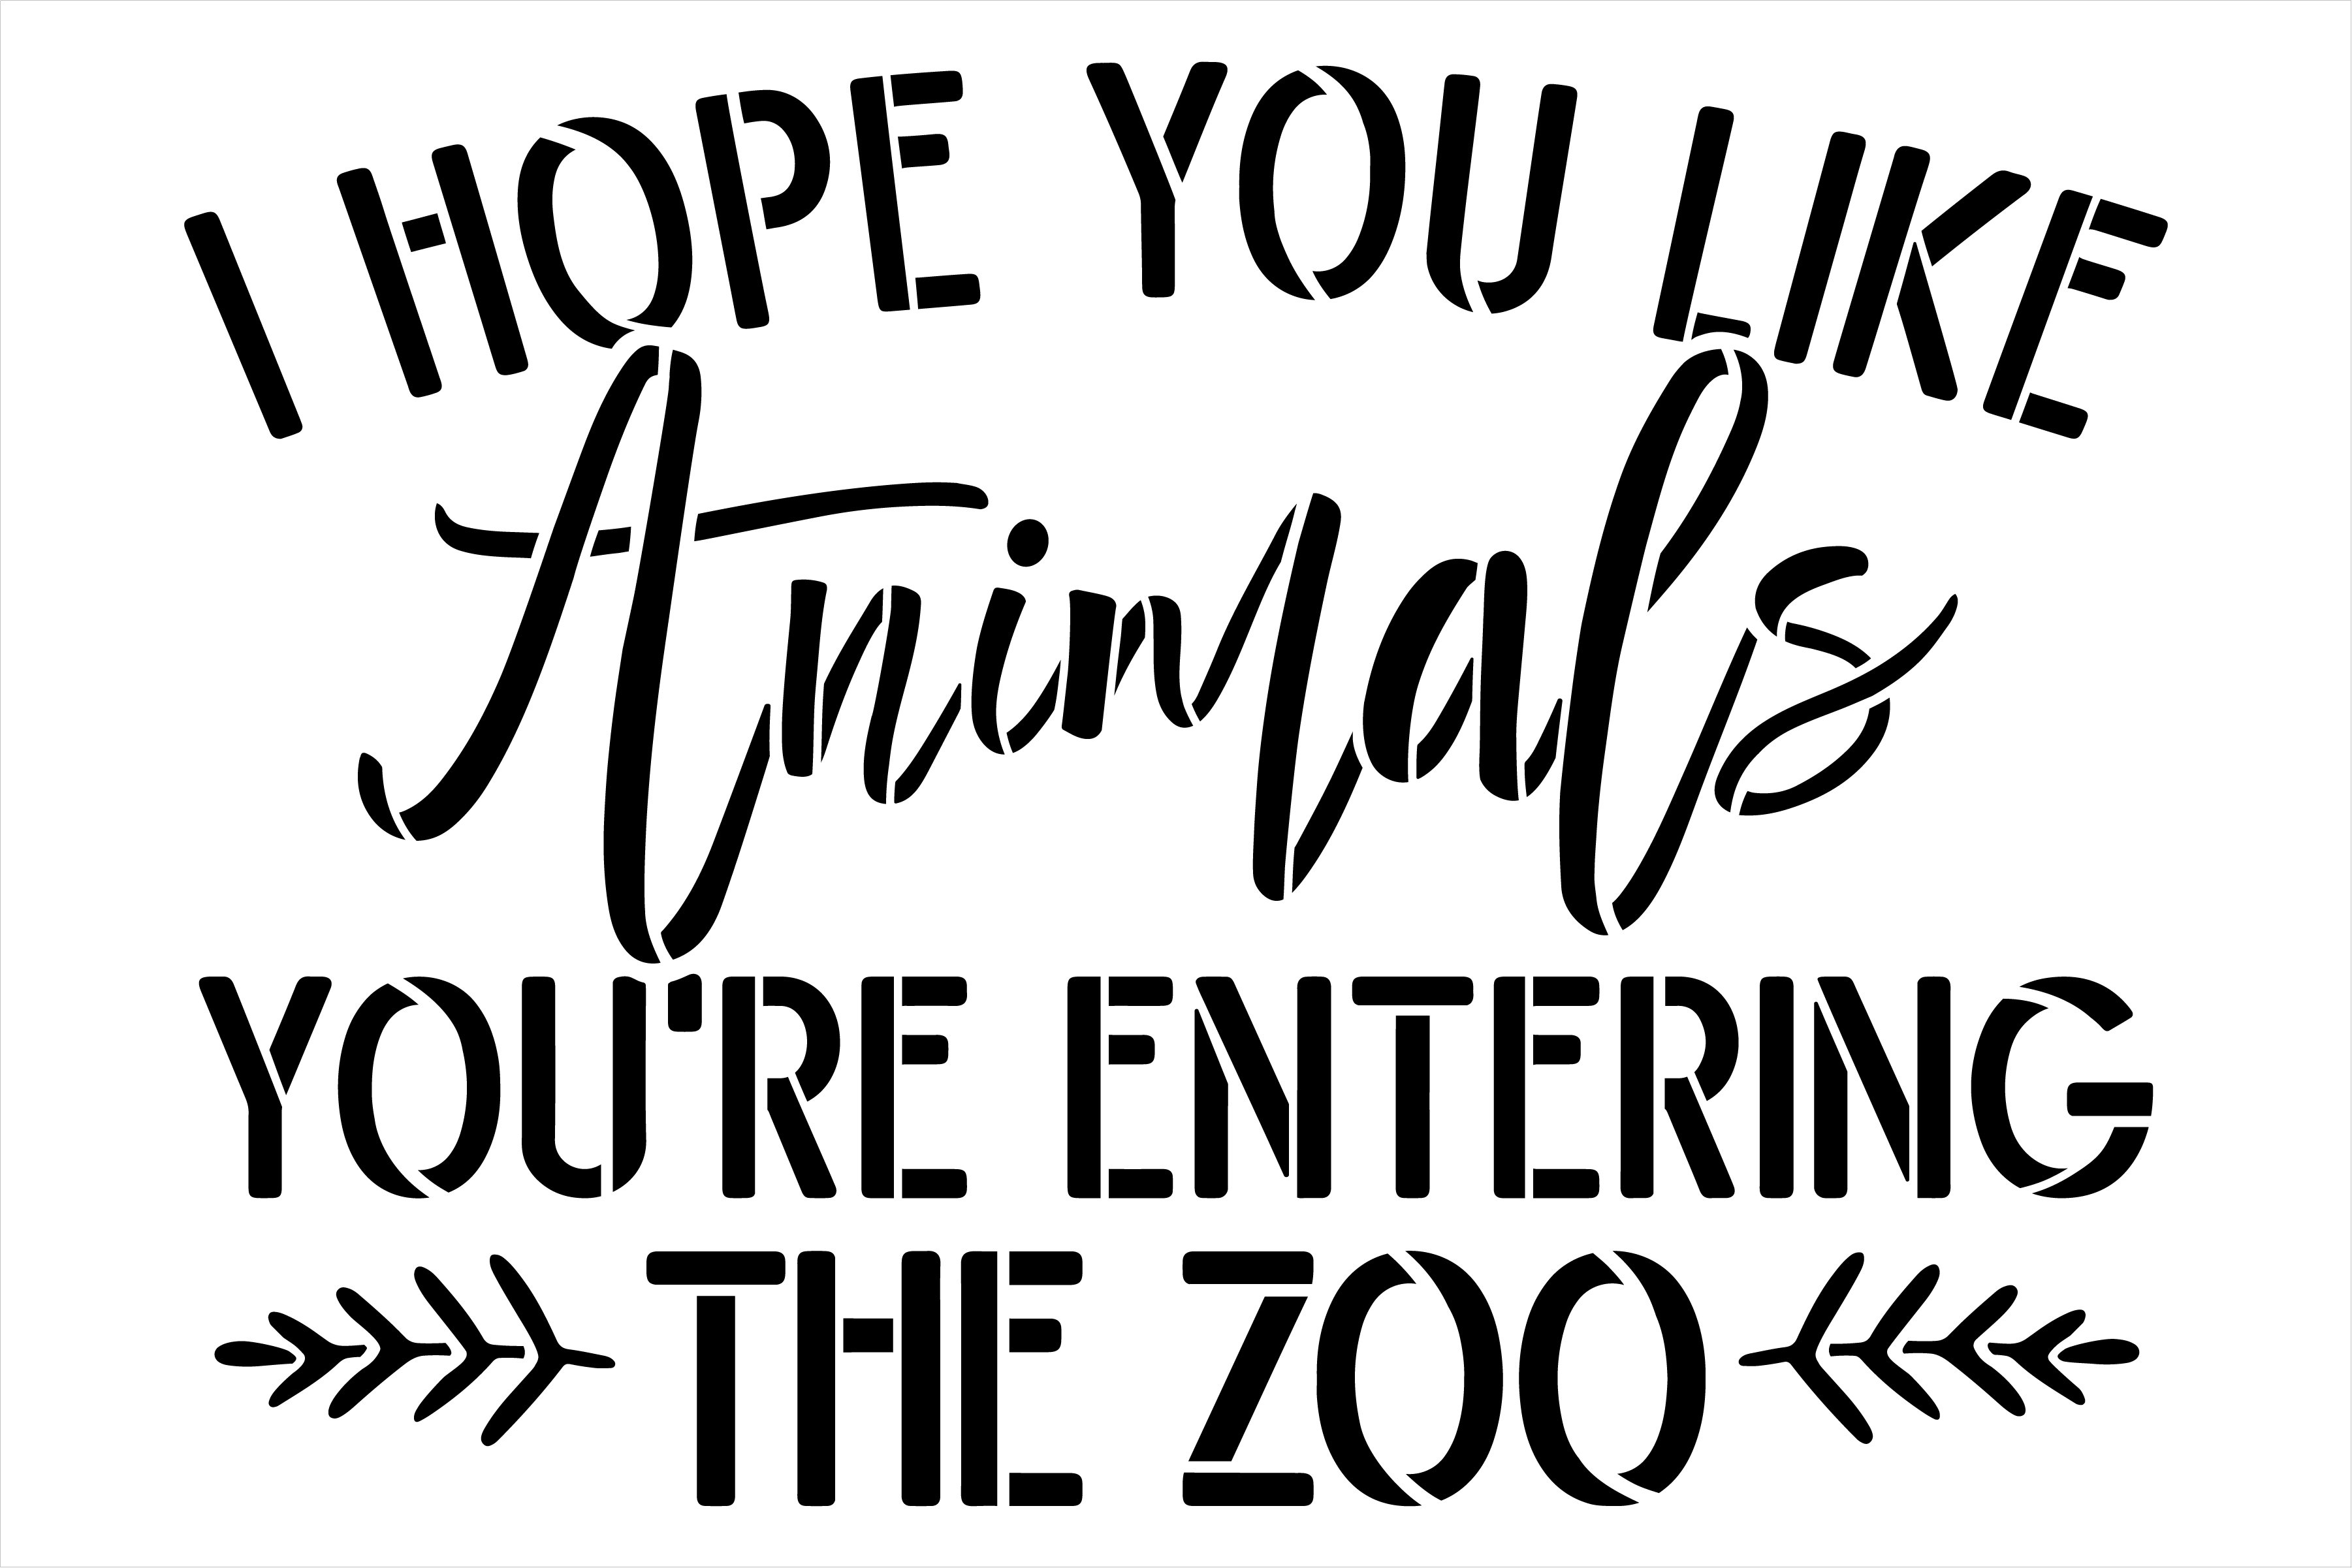 You're Entering The Zoo Stencil by StudioR12   Funny Pet & Animal Lover Word Art   Craft & Paint DIY Welcome Doormat   Select Size